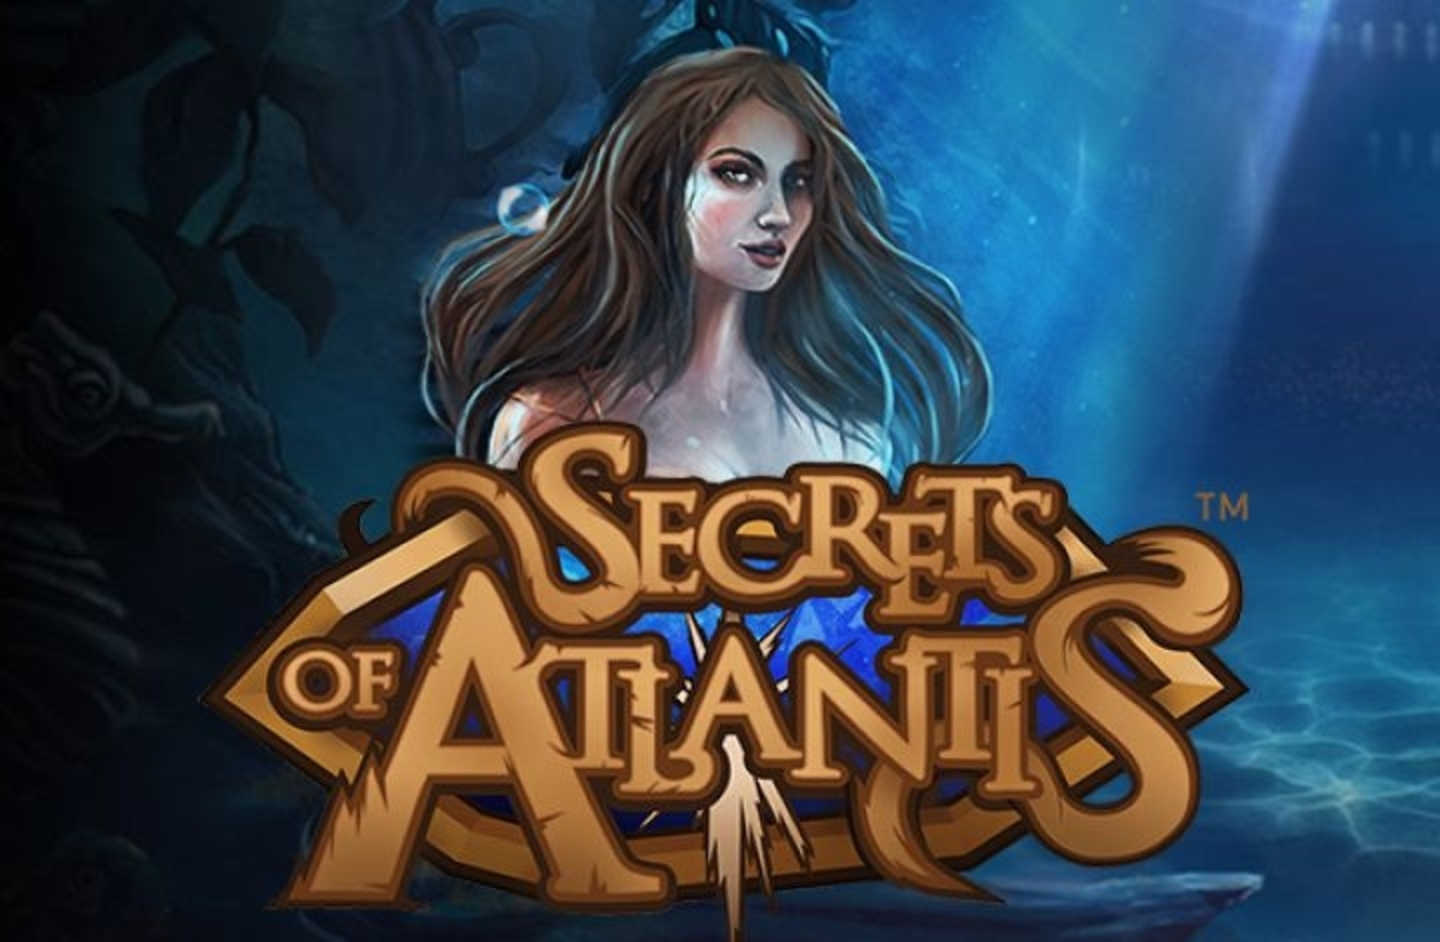 Secrets of Atlantis Online Slot Demo Game by NetEnt